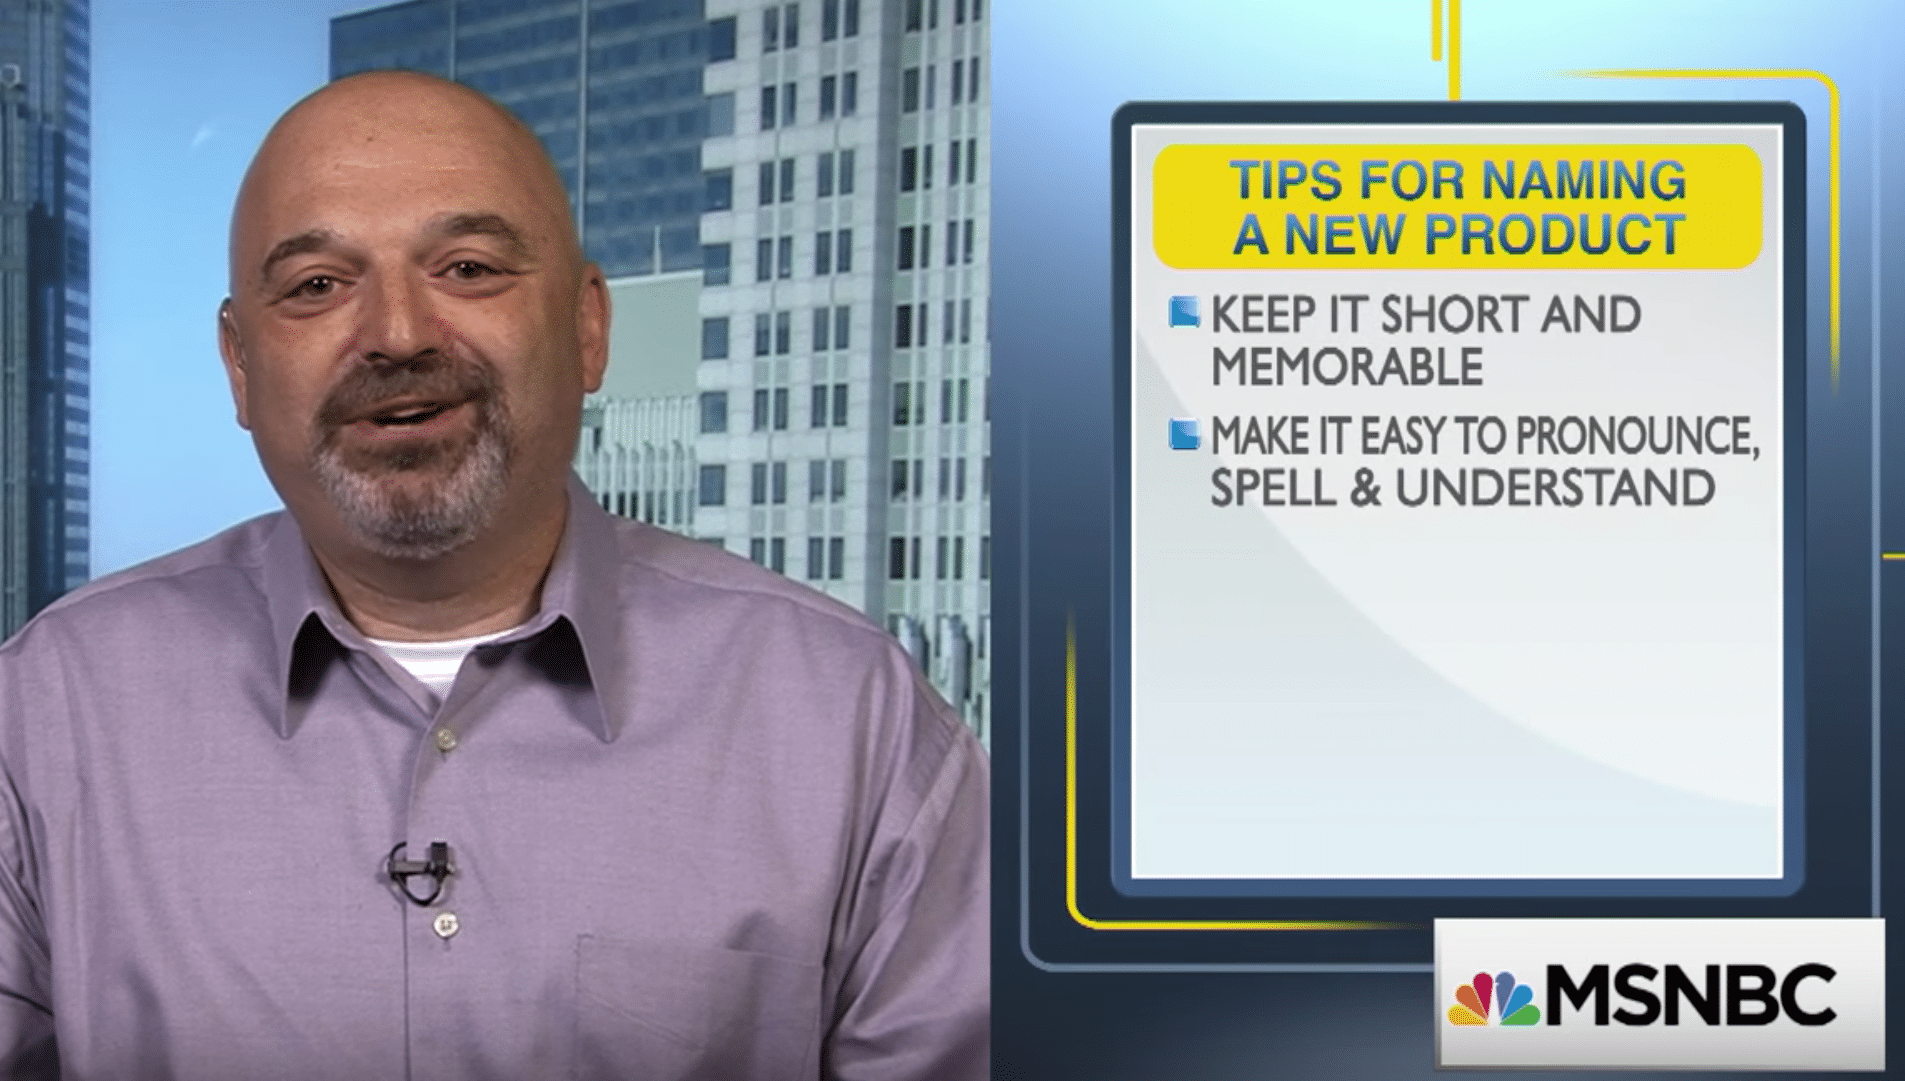 5 Tips for Naming Your New Product on MSNBC Your Business